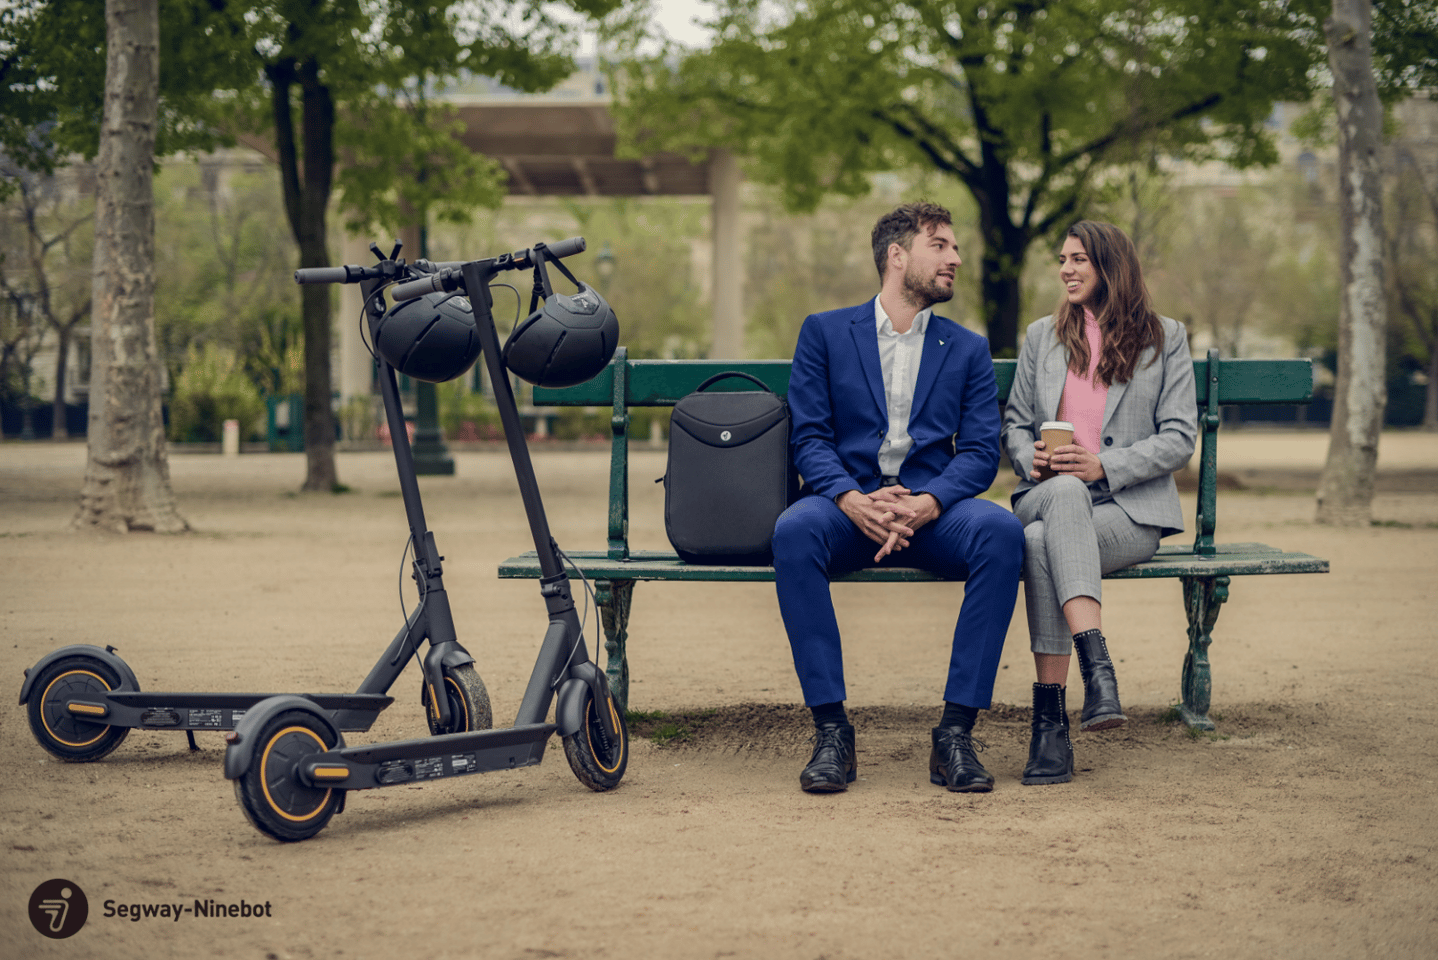 The Segway-Ninebot Max G30 electric kickscooter will make its debut at IFA 2019 in Berlin, Germany, from September 6